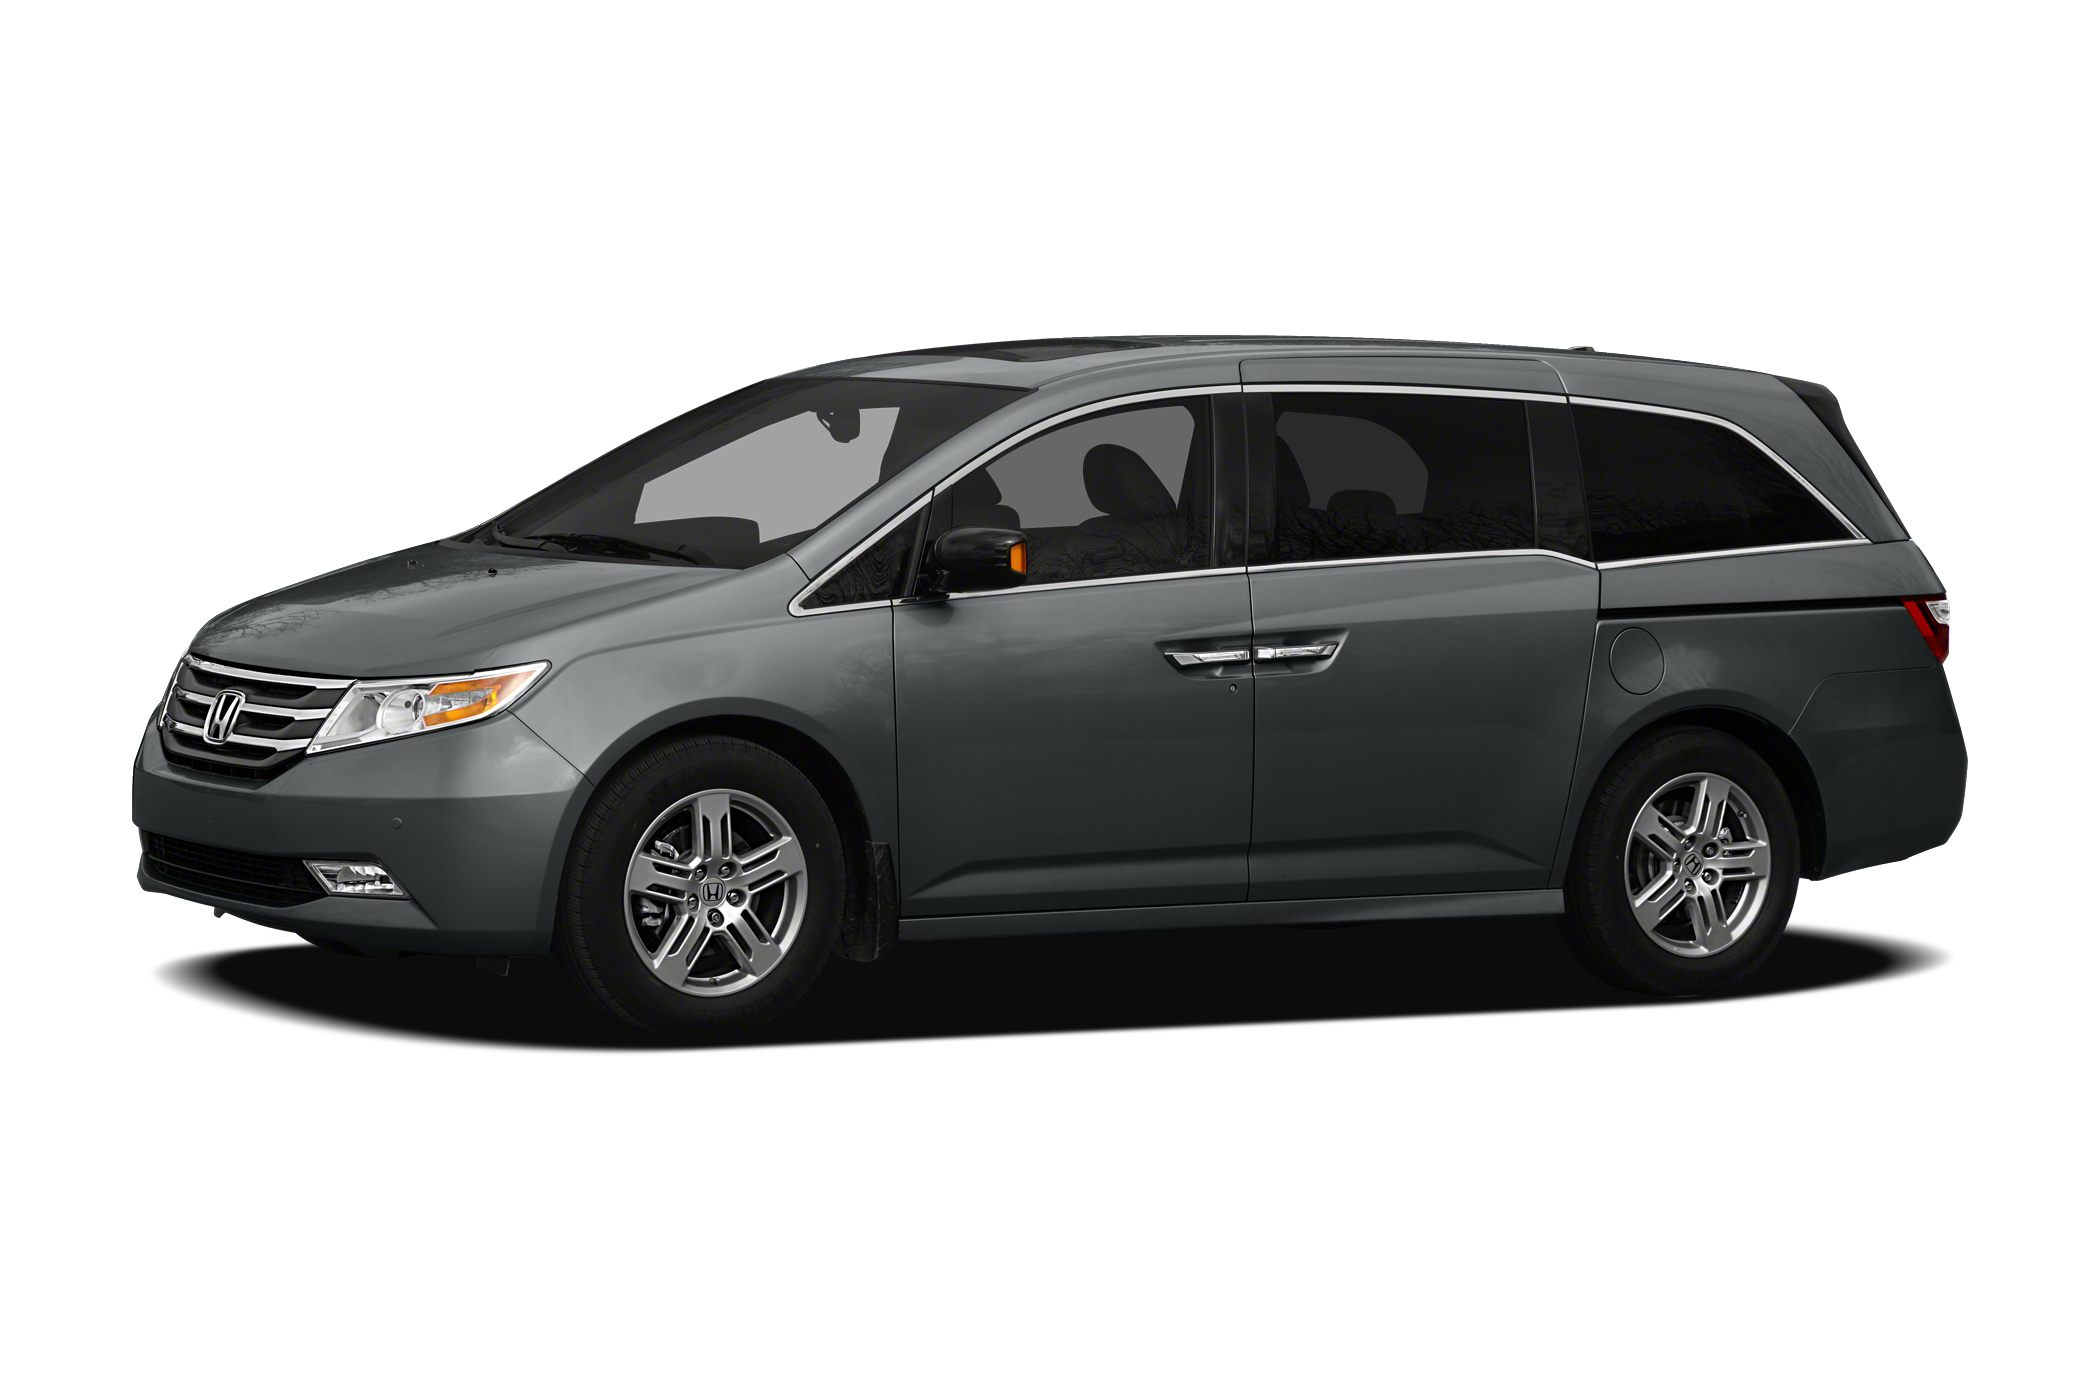 2012 Honda Odyssey EX-L EX-L Taffeta White on Stone Gray Heated Leather Bluetooth Moonroof Re